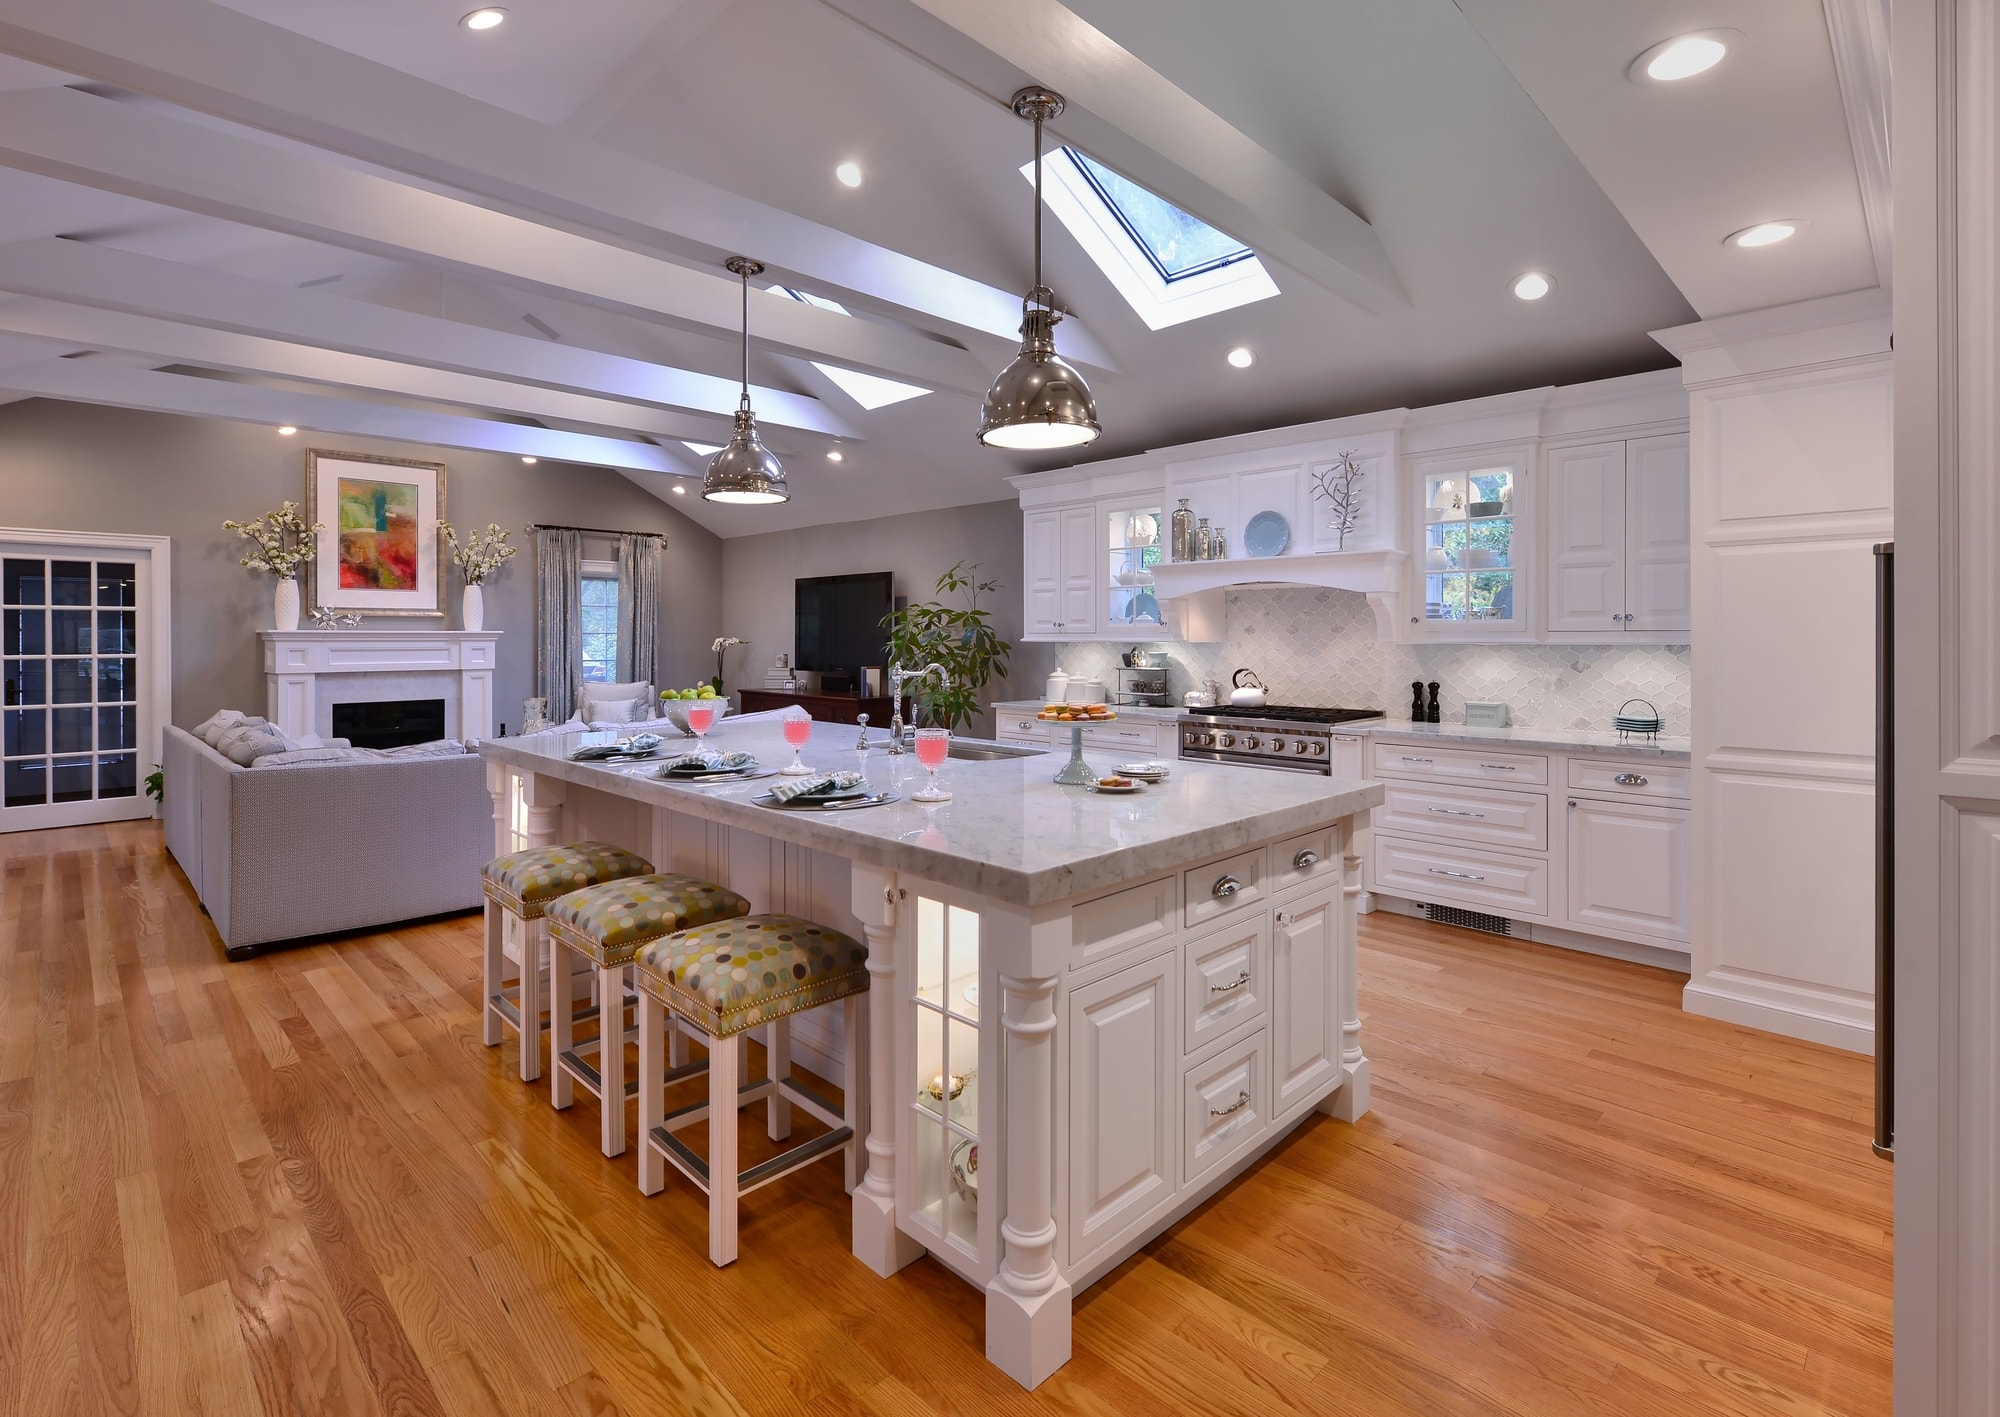 Transitional style kitchen with an open plan design